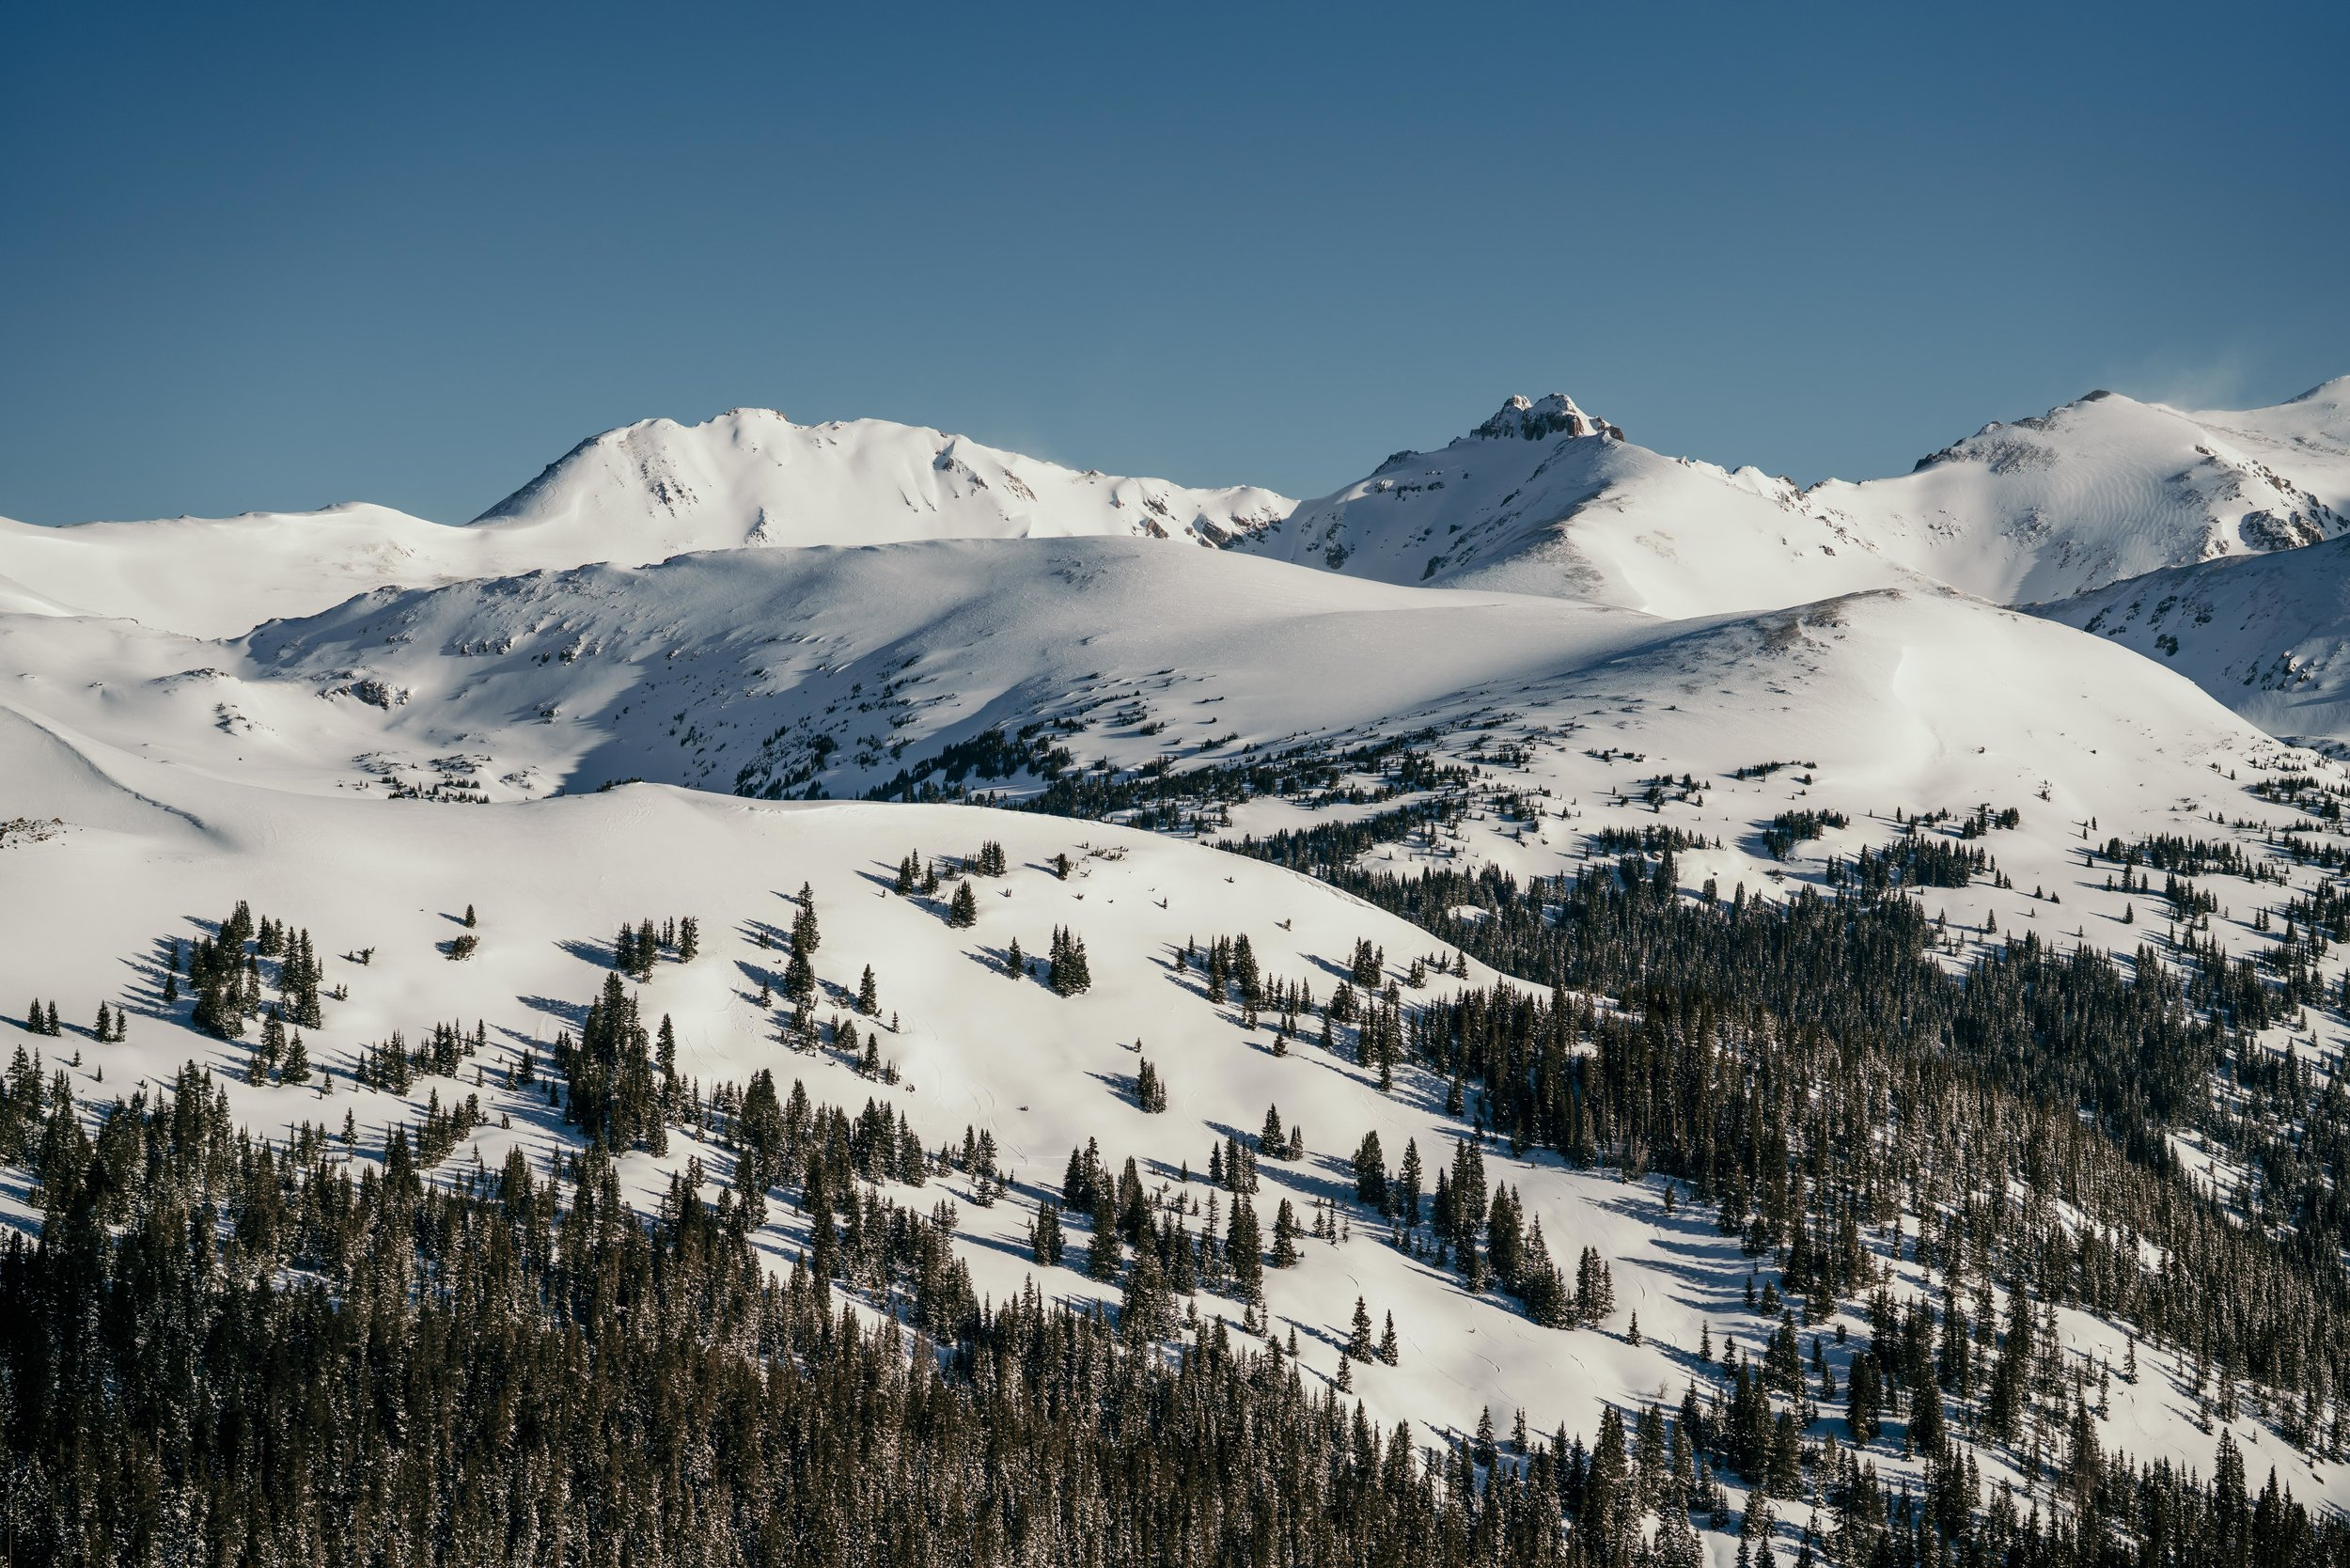 View from the top of Loveland Pass